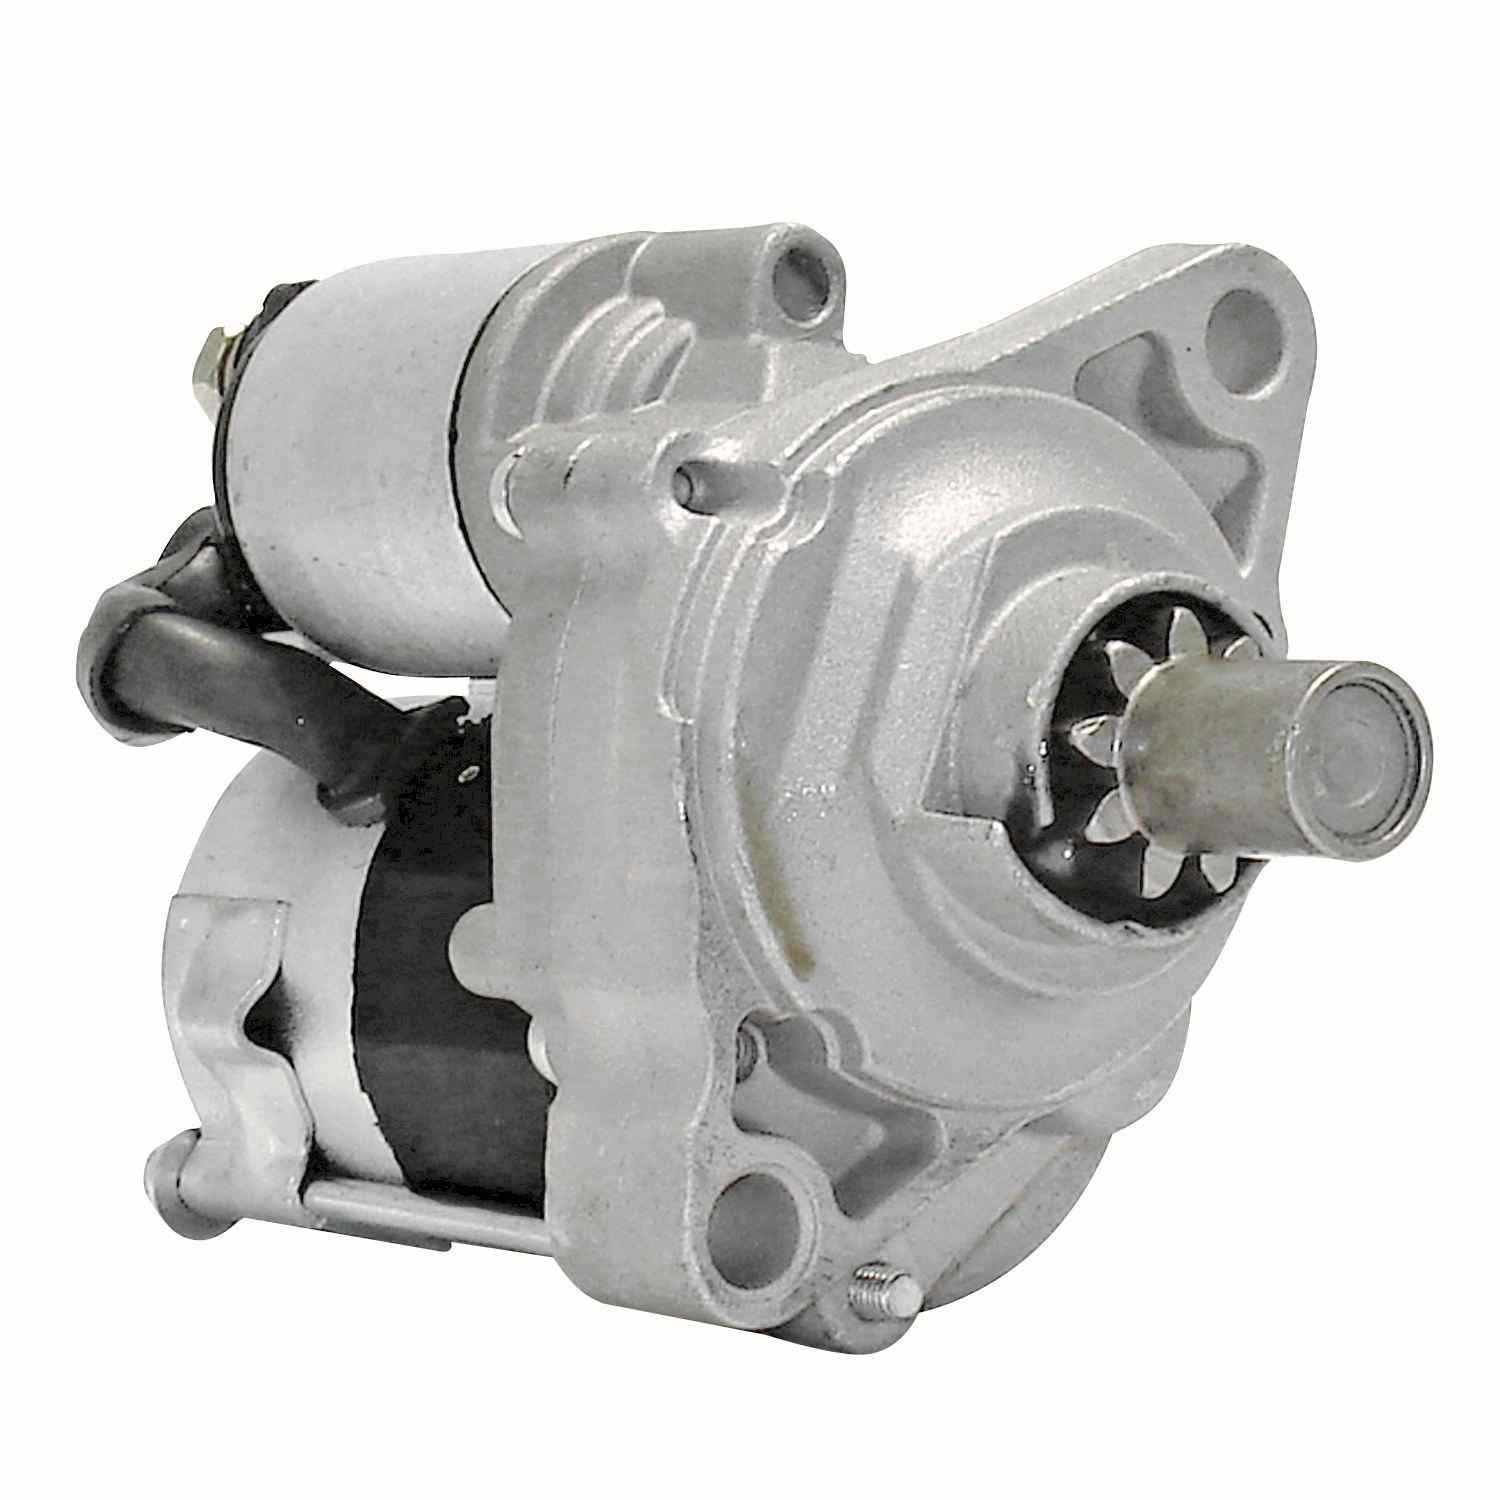 ACDELCO GOLD/PROFESSIONAL - Reman Starter Motor - DCC 336-1470